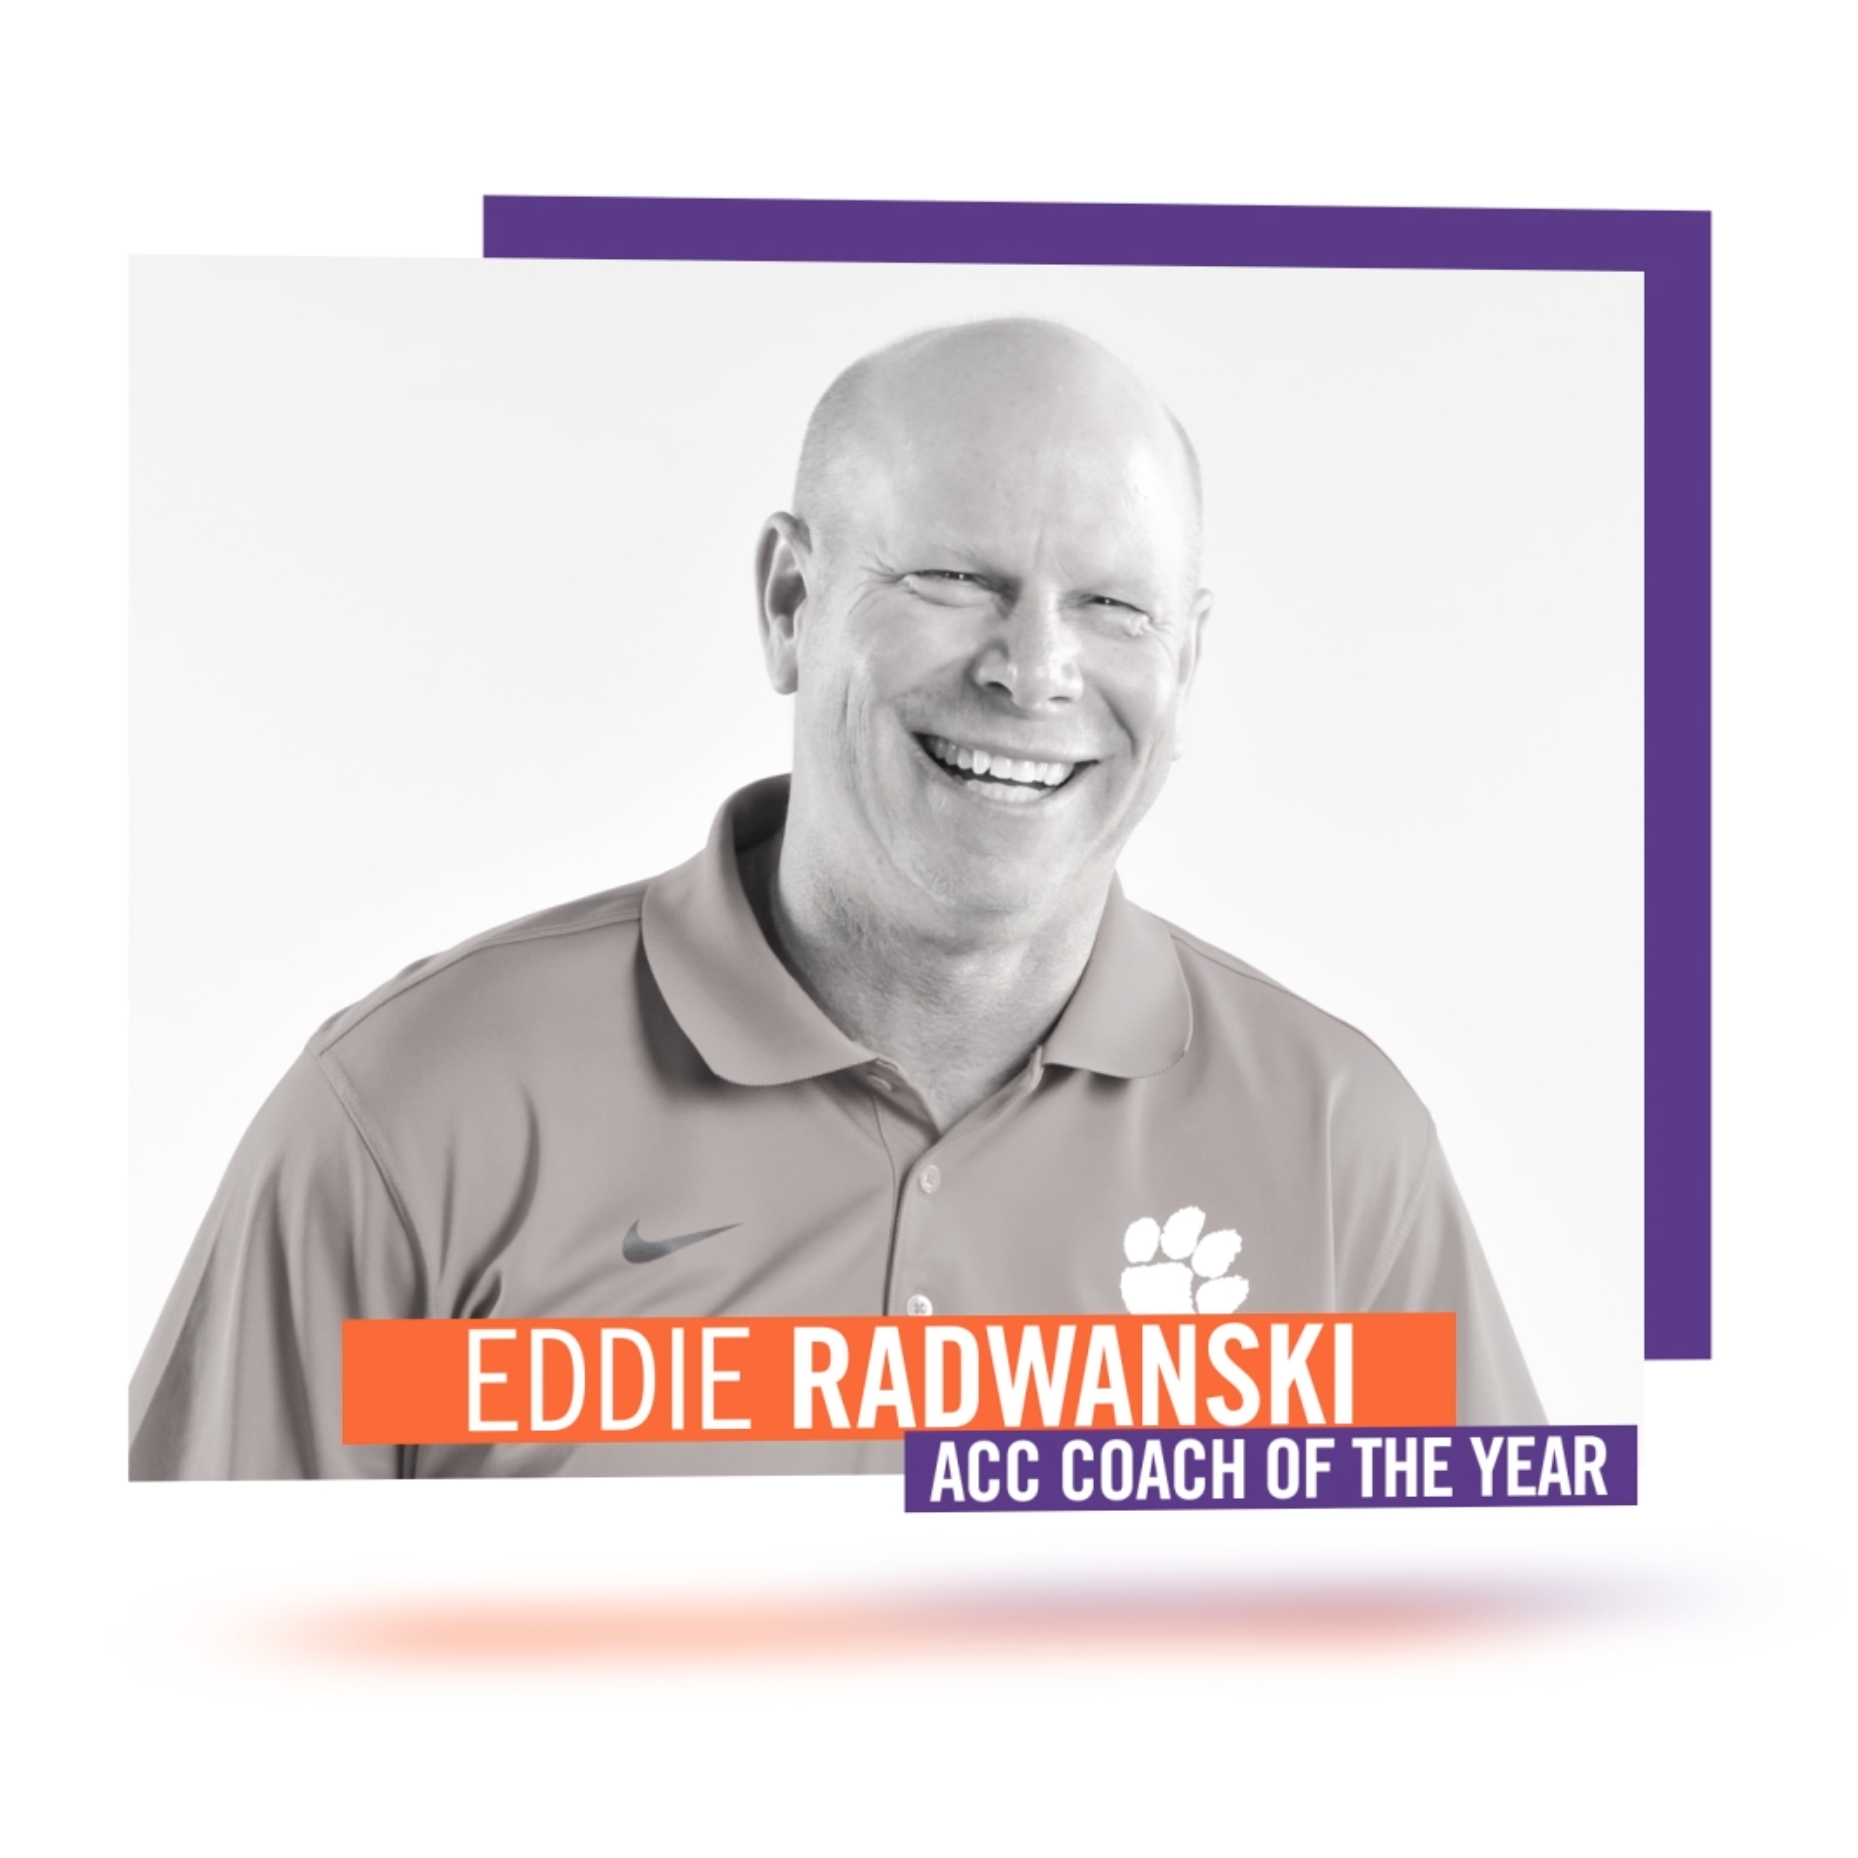 Radwanski Named ACC Coach of the Year, Four Tigers Earn All-ACC Honors